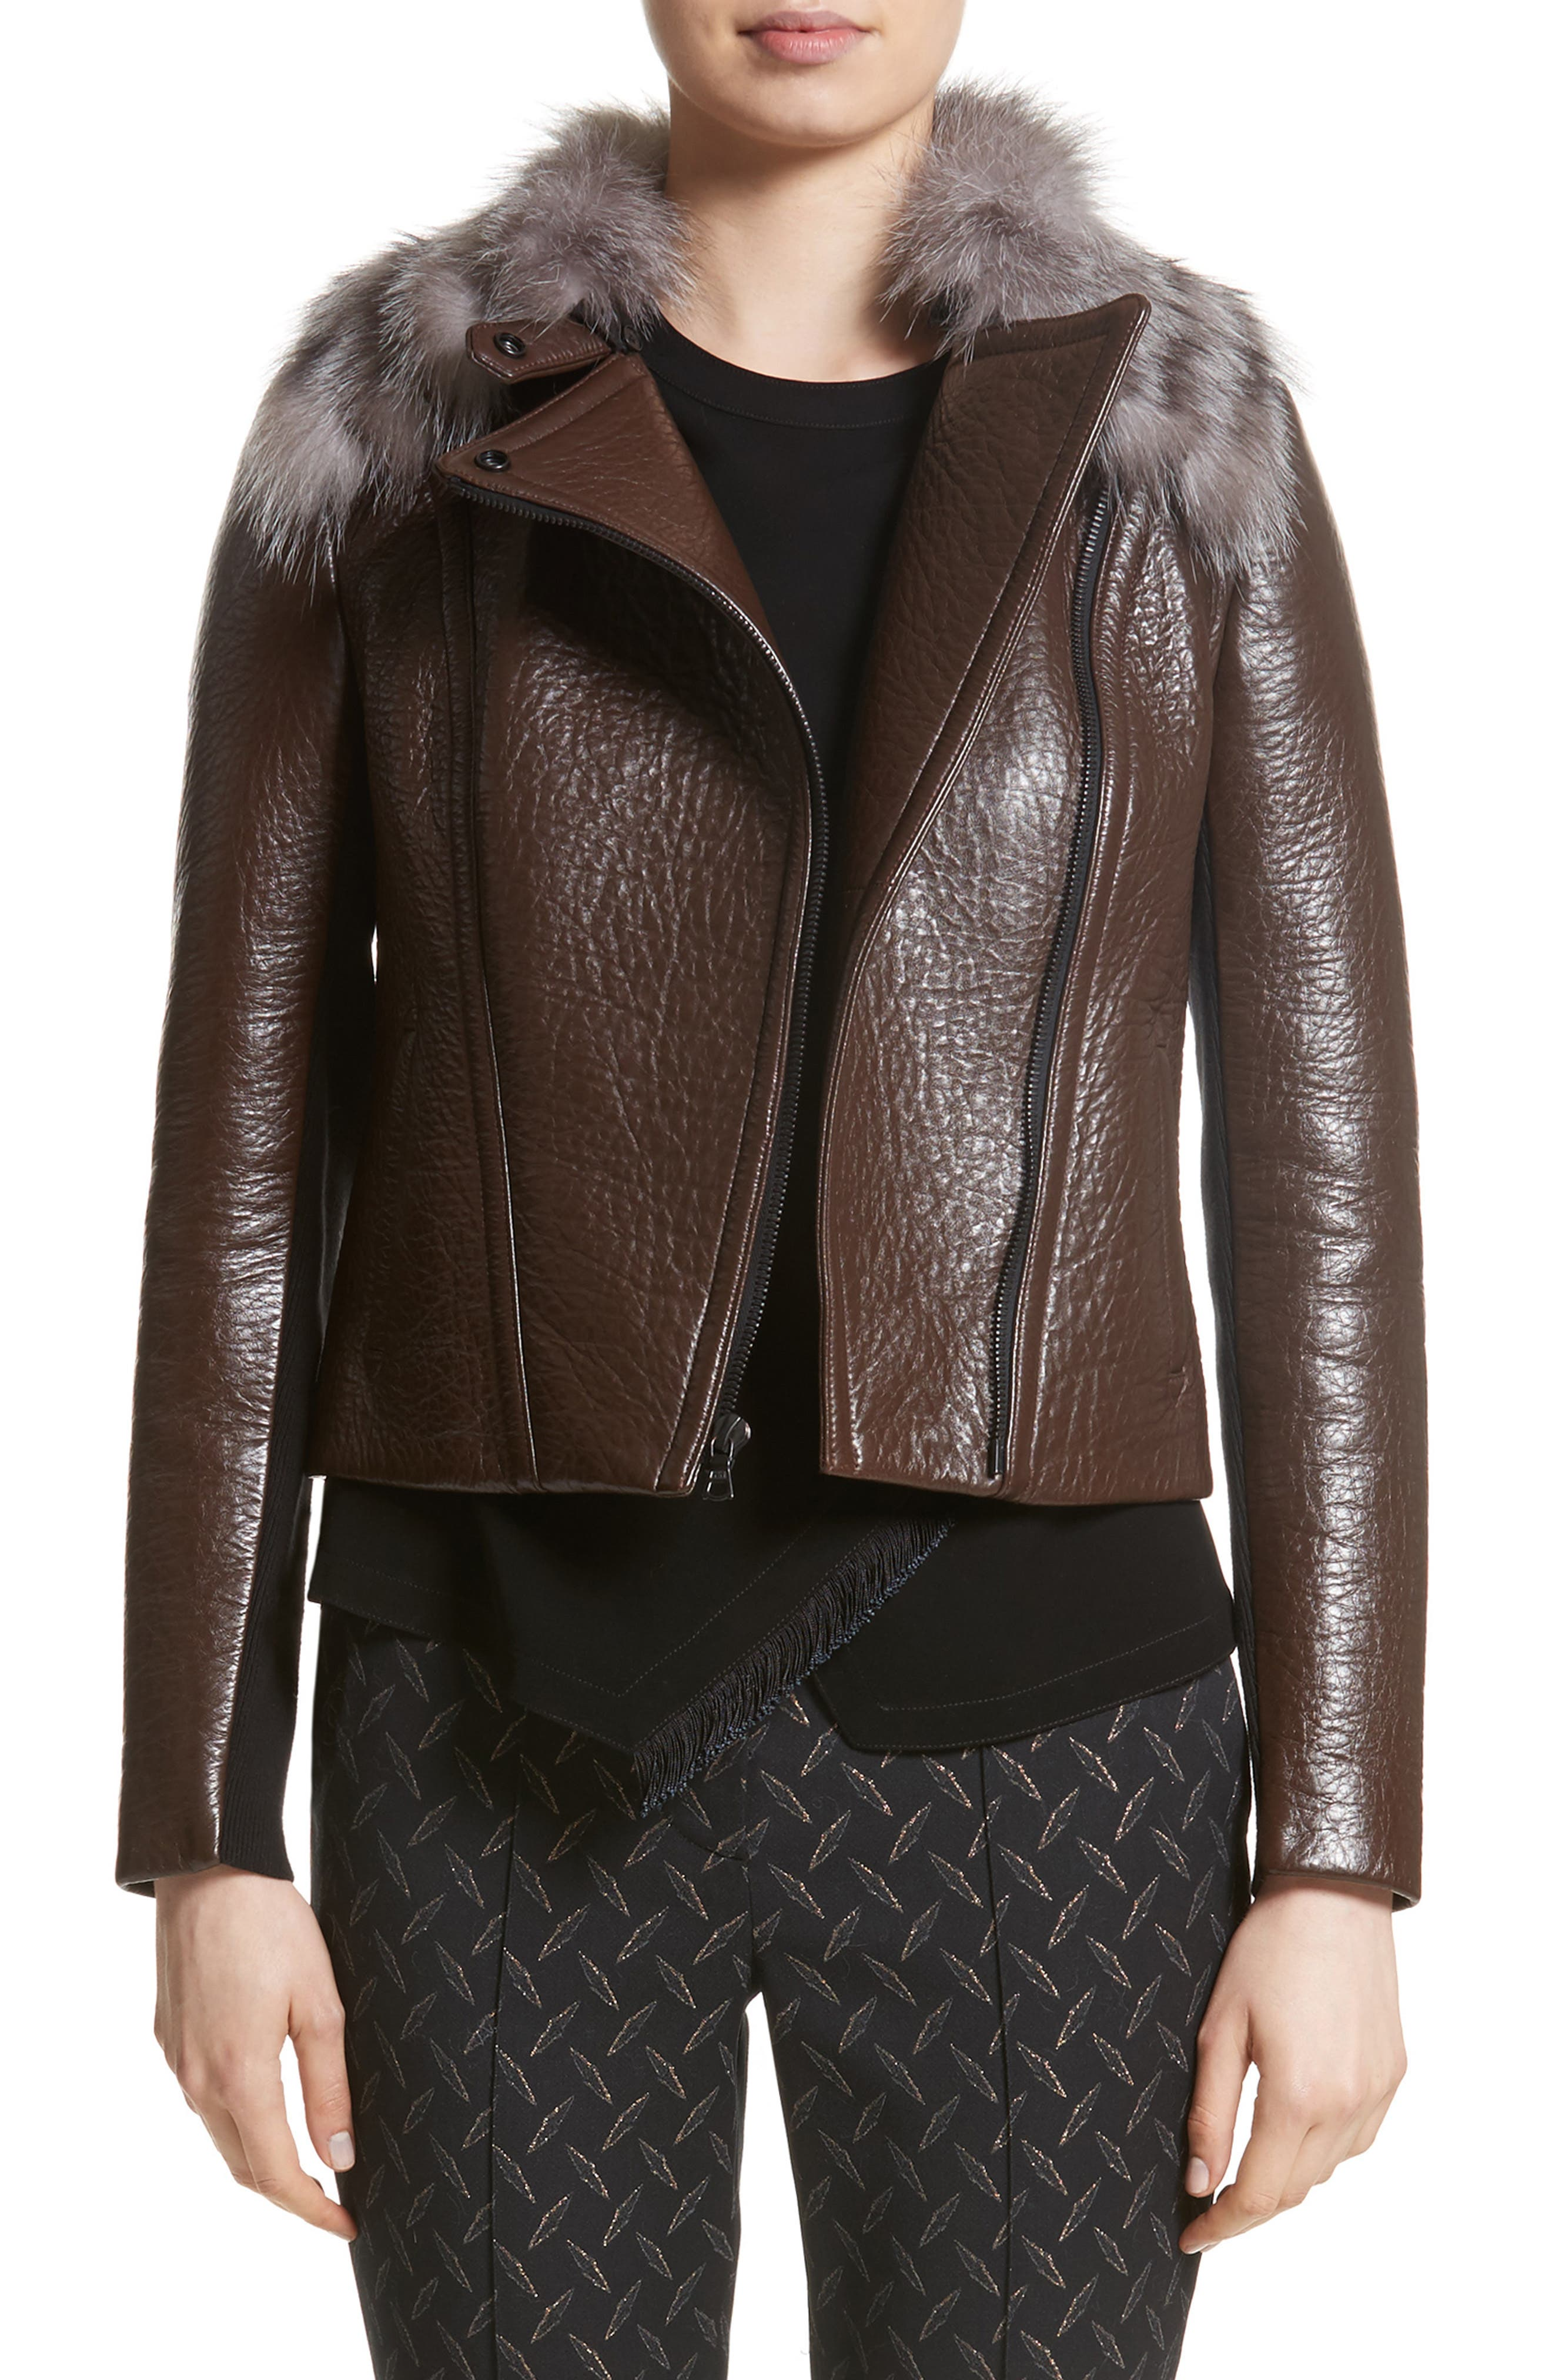 Yigal Azrouël Bonded Moto Leather Jacket with Removable Genuine Fox Fur Collar